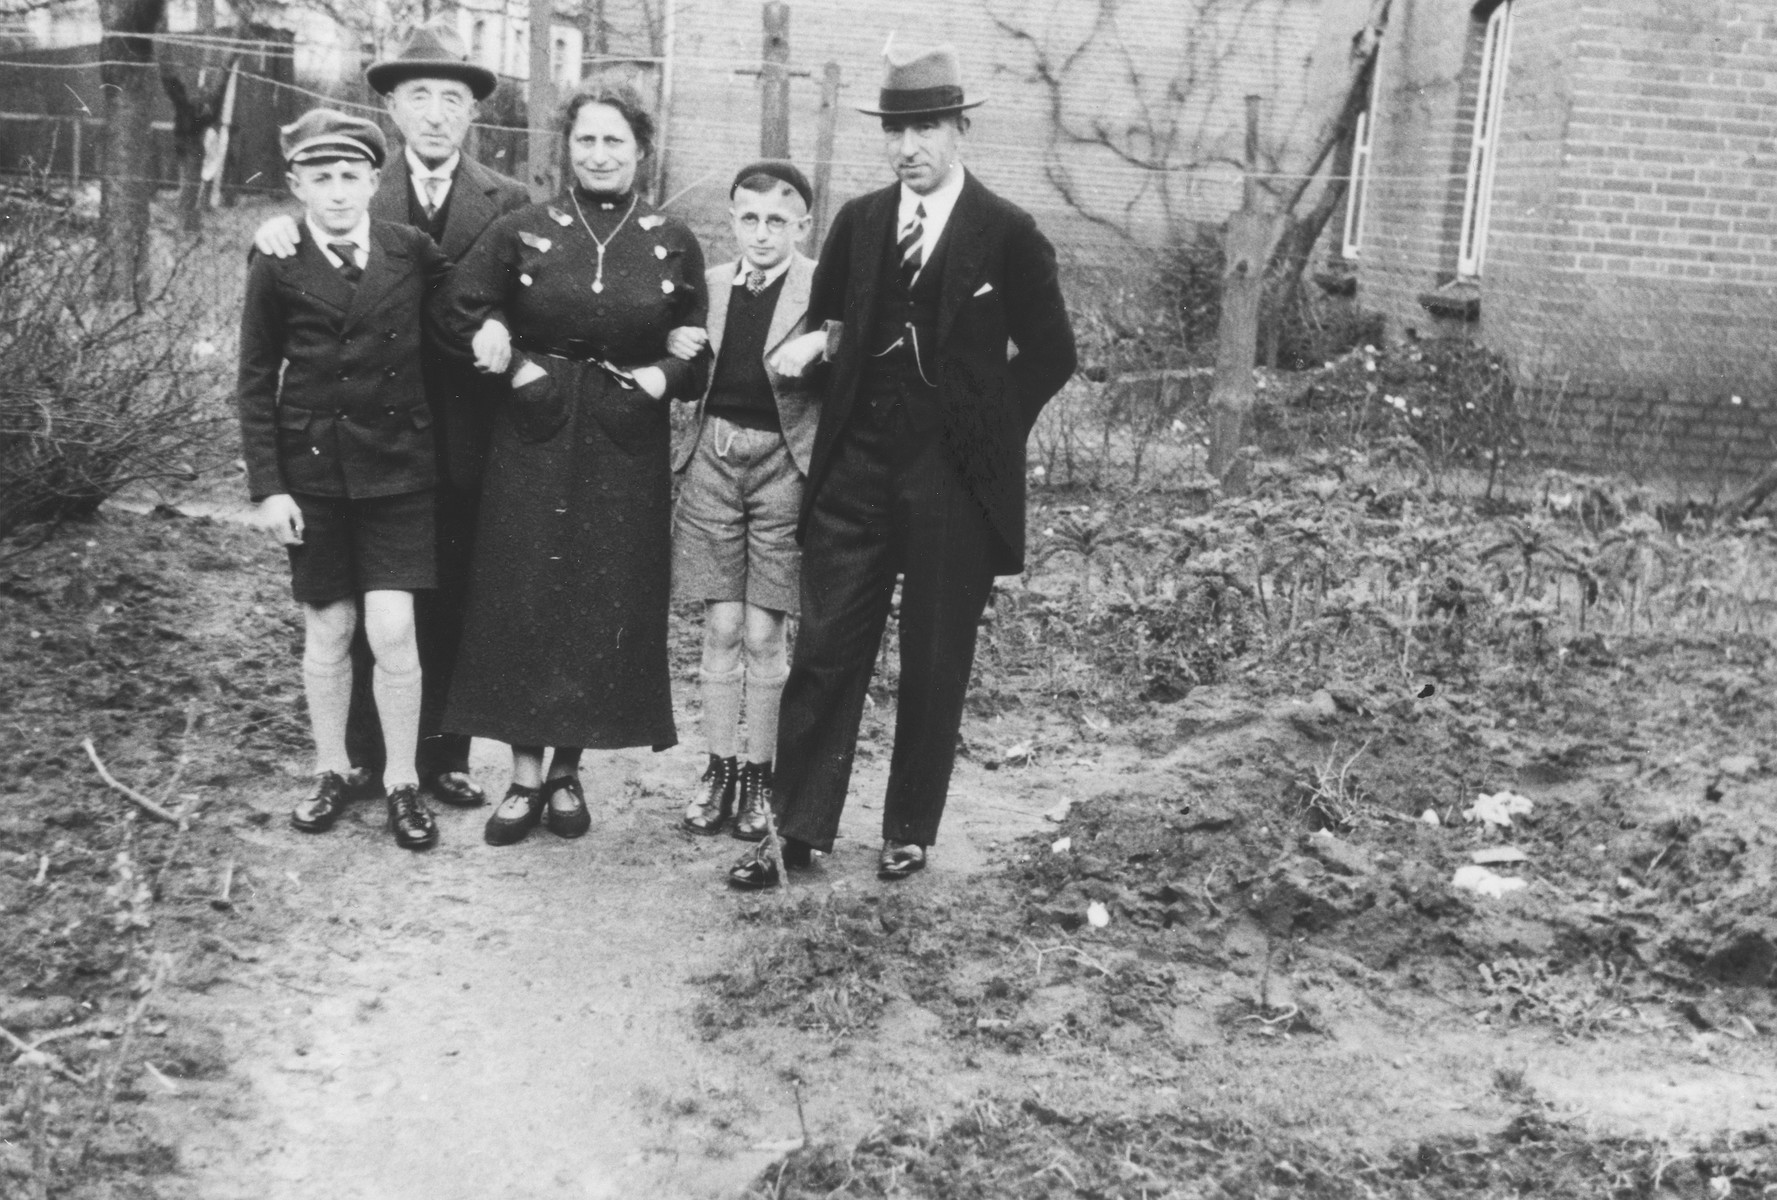 Members of the de Vries family pose outside on the day of their son Robert's bar mitzvah.  Pictured from left to right are: Moritz, Benjamin, Ella, Robert and Paul de Vries. Robert and Paul survived in the Westerbork transit camp.  Benjamin, Ella and Moritz were deported to Auschwitz where they perished.